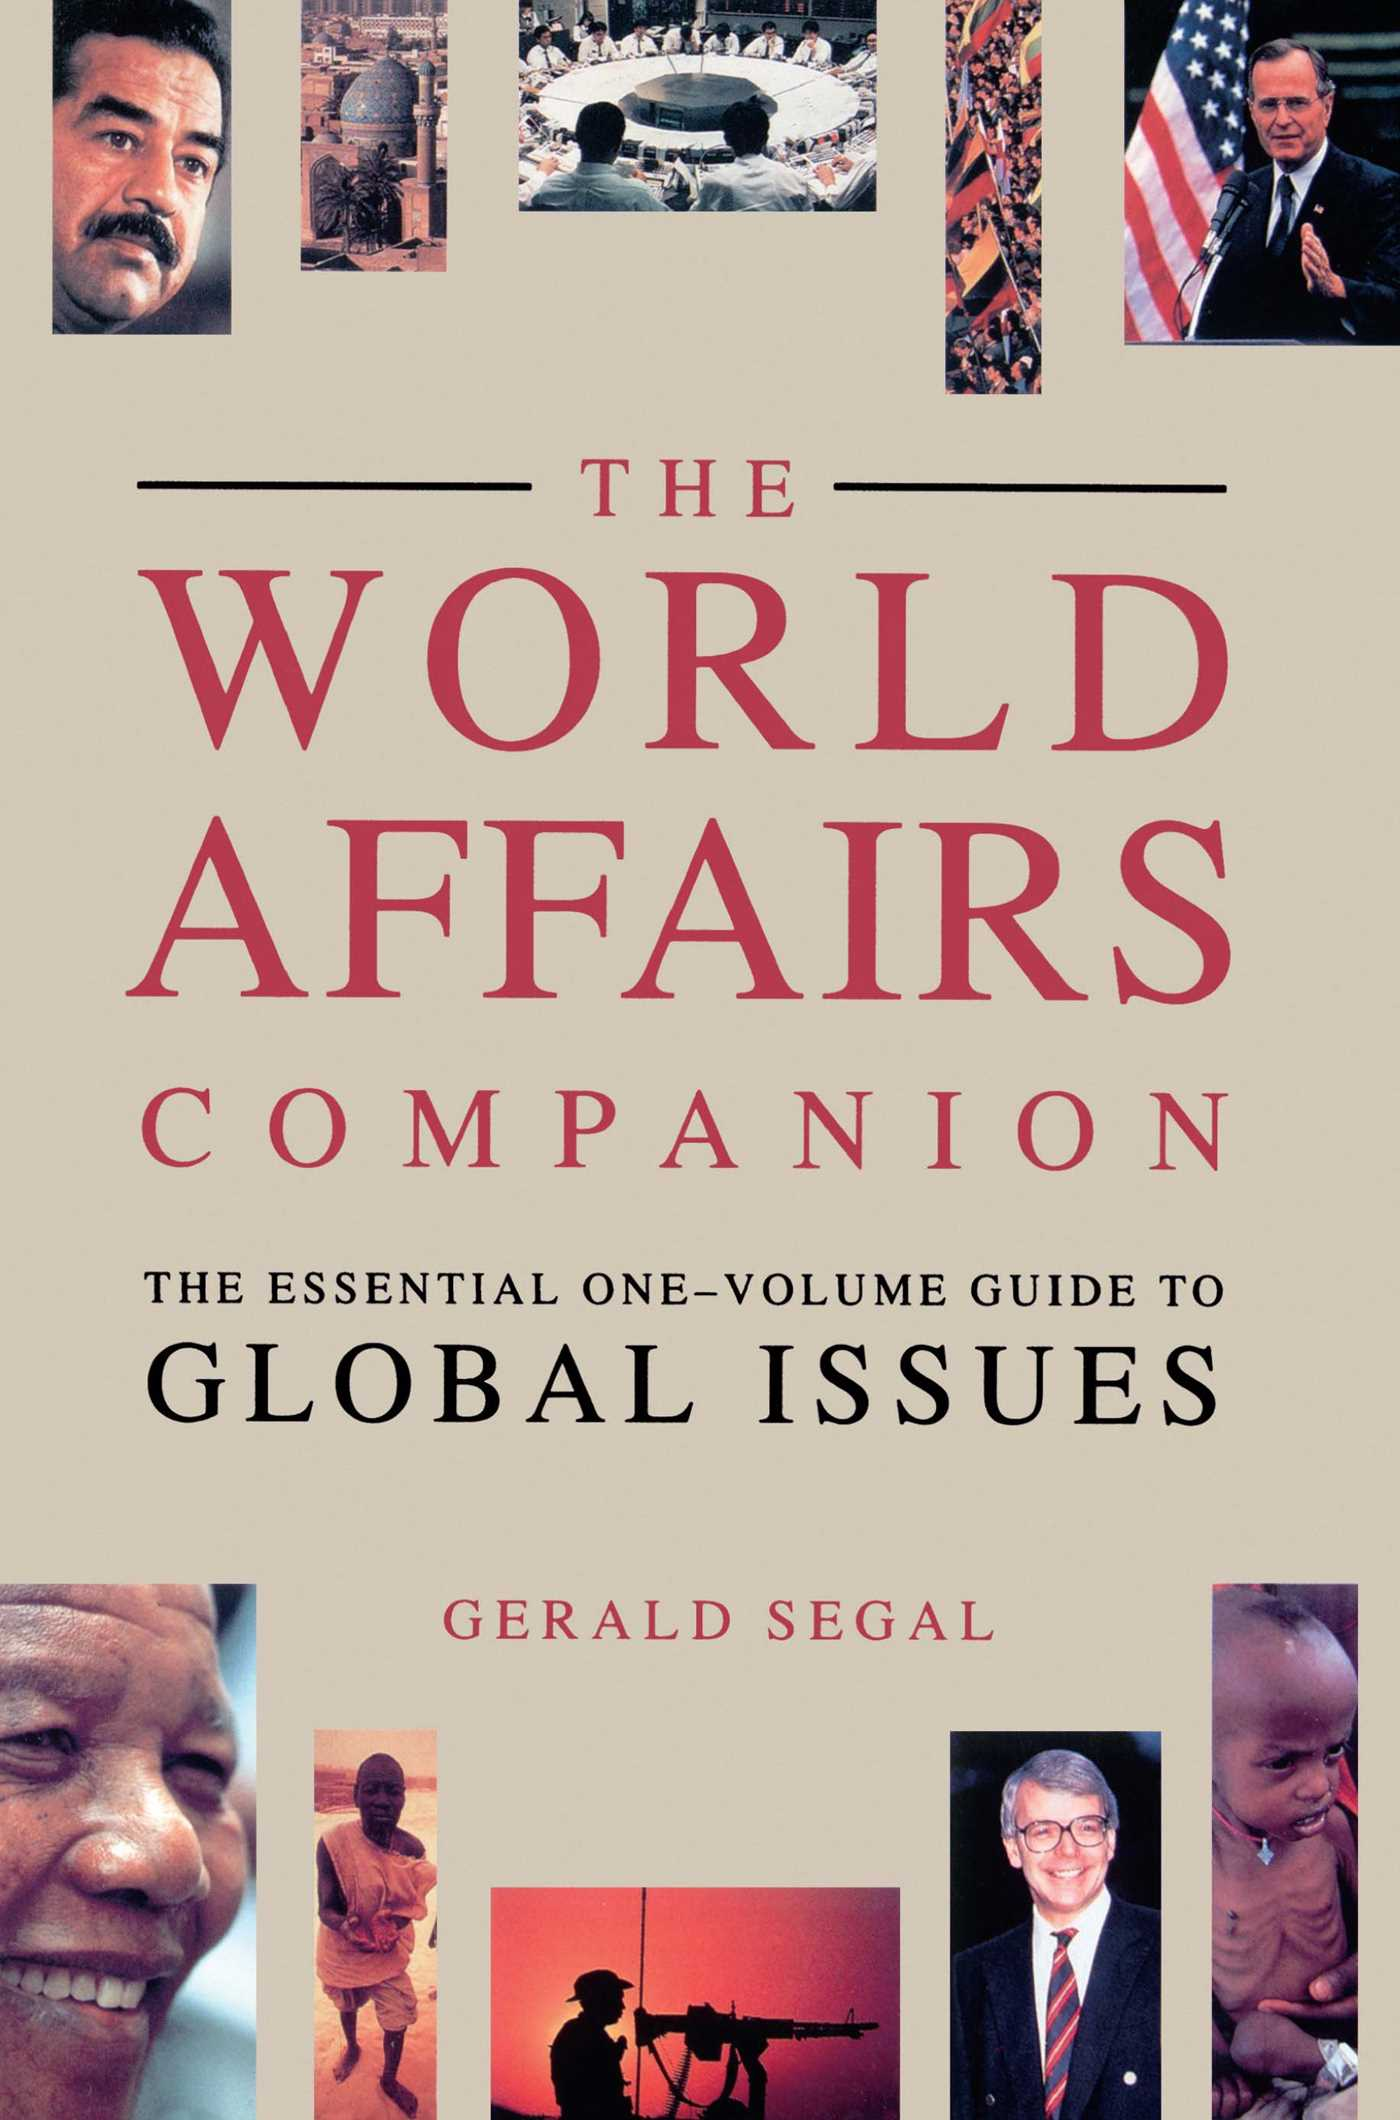 World affairs companion 9780671741563 hr